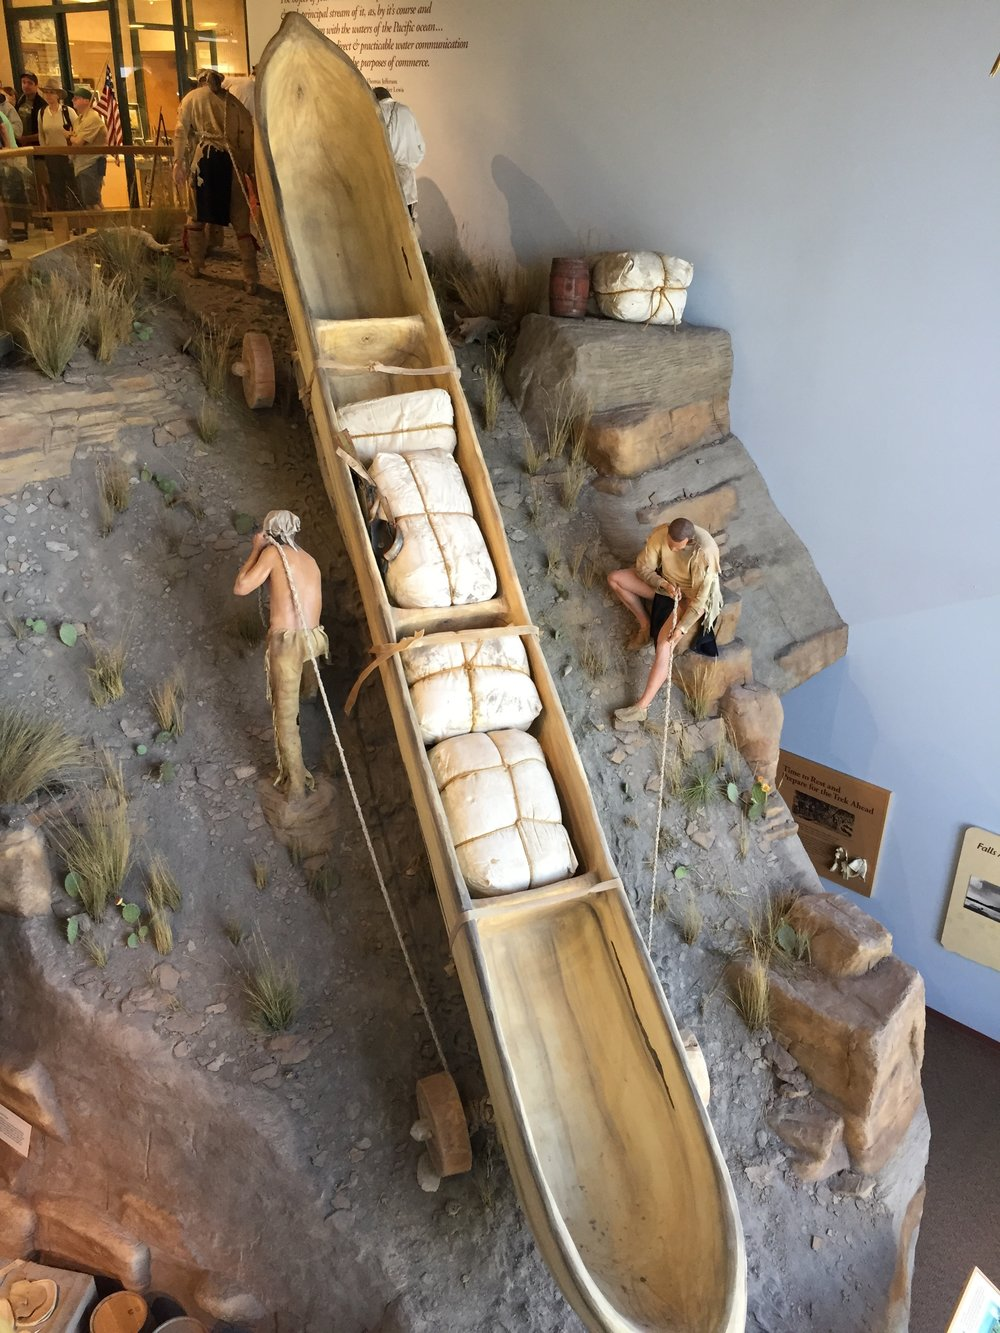 One of the exhibits in the center which shows how men moved their boats up and down the river banks.